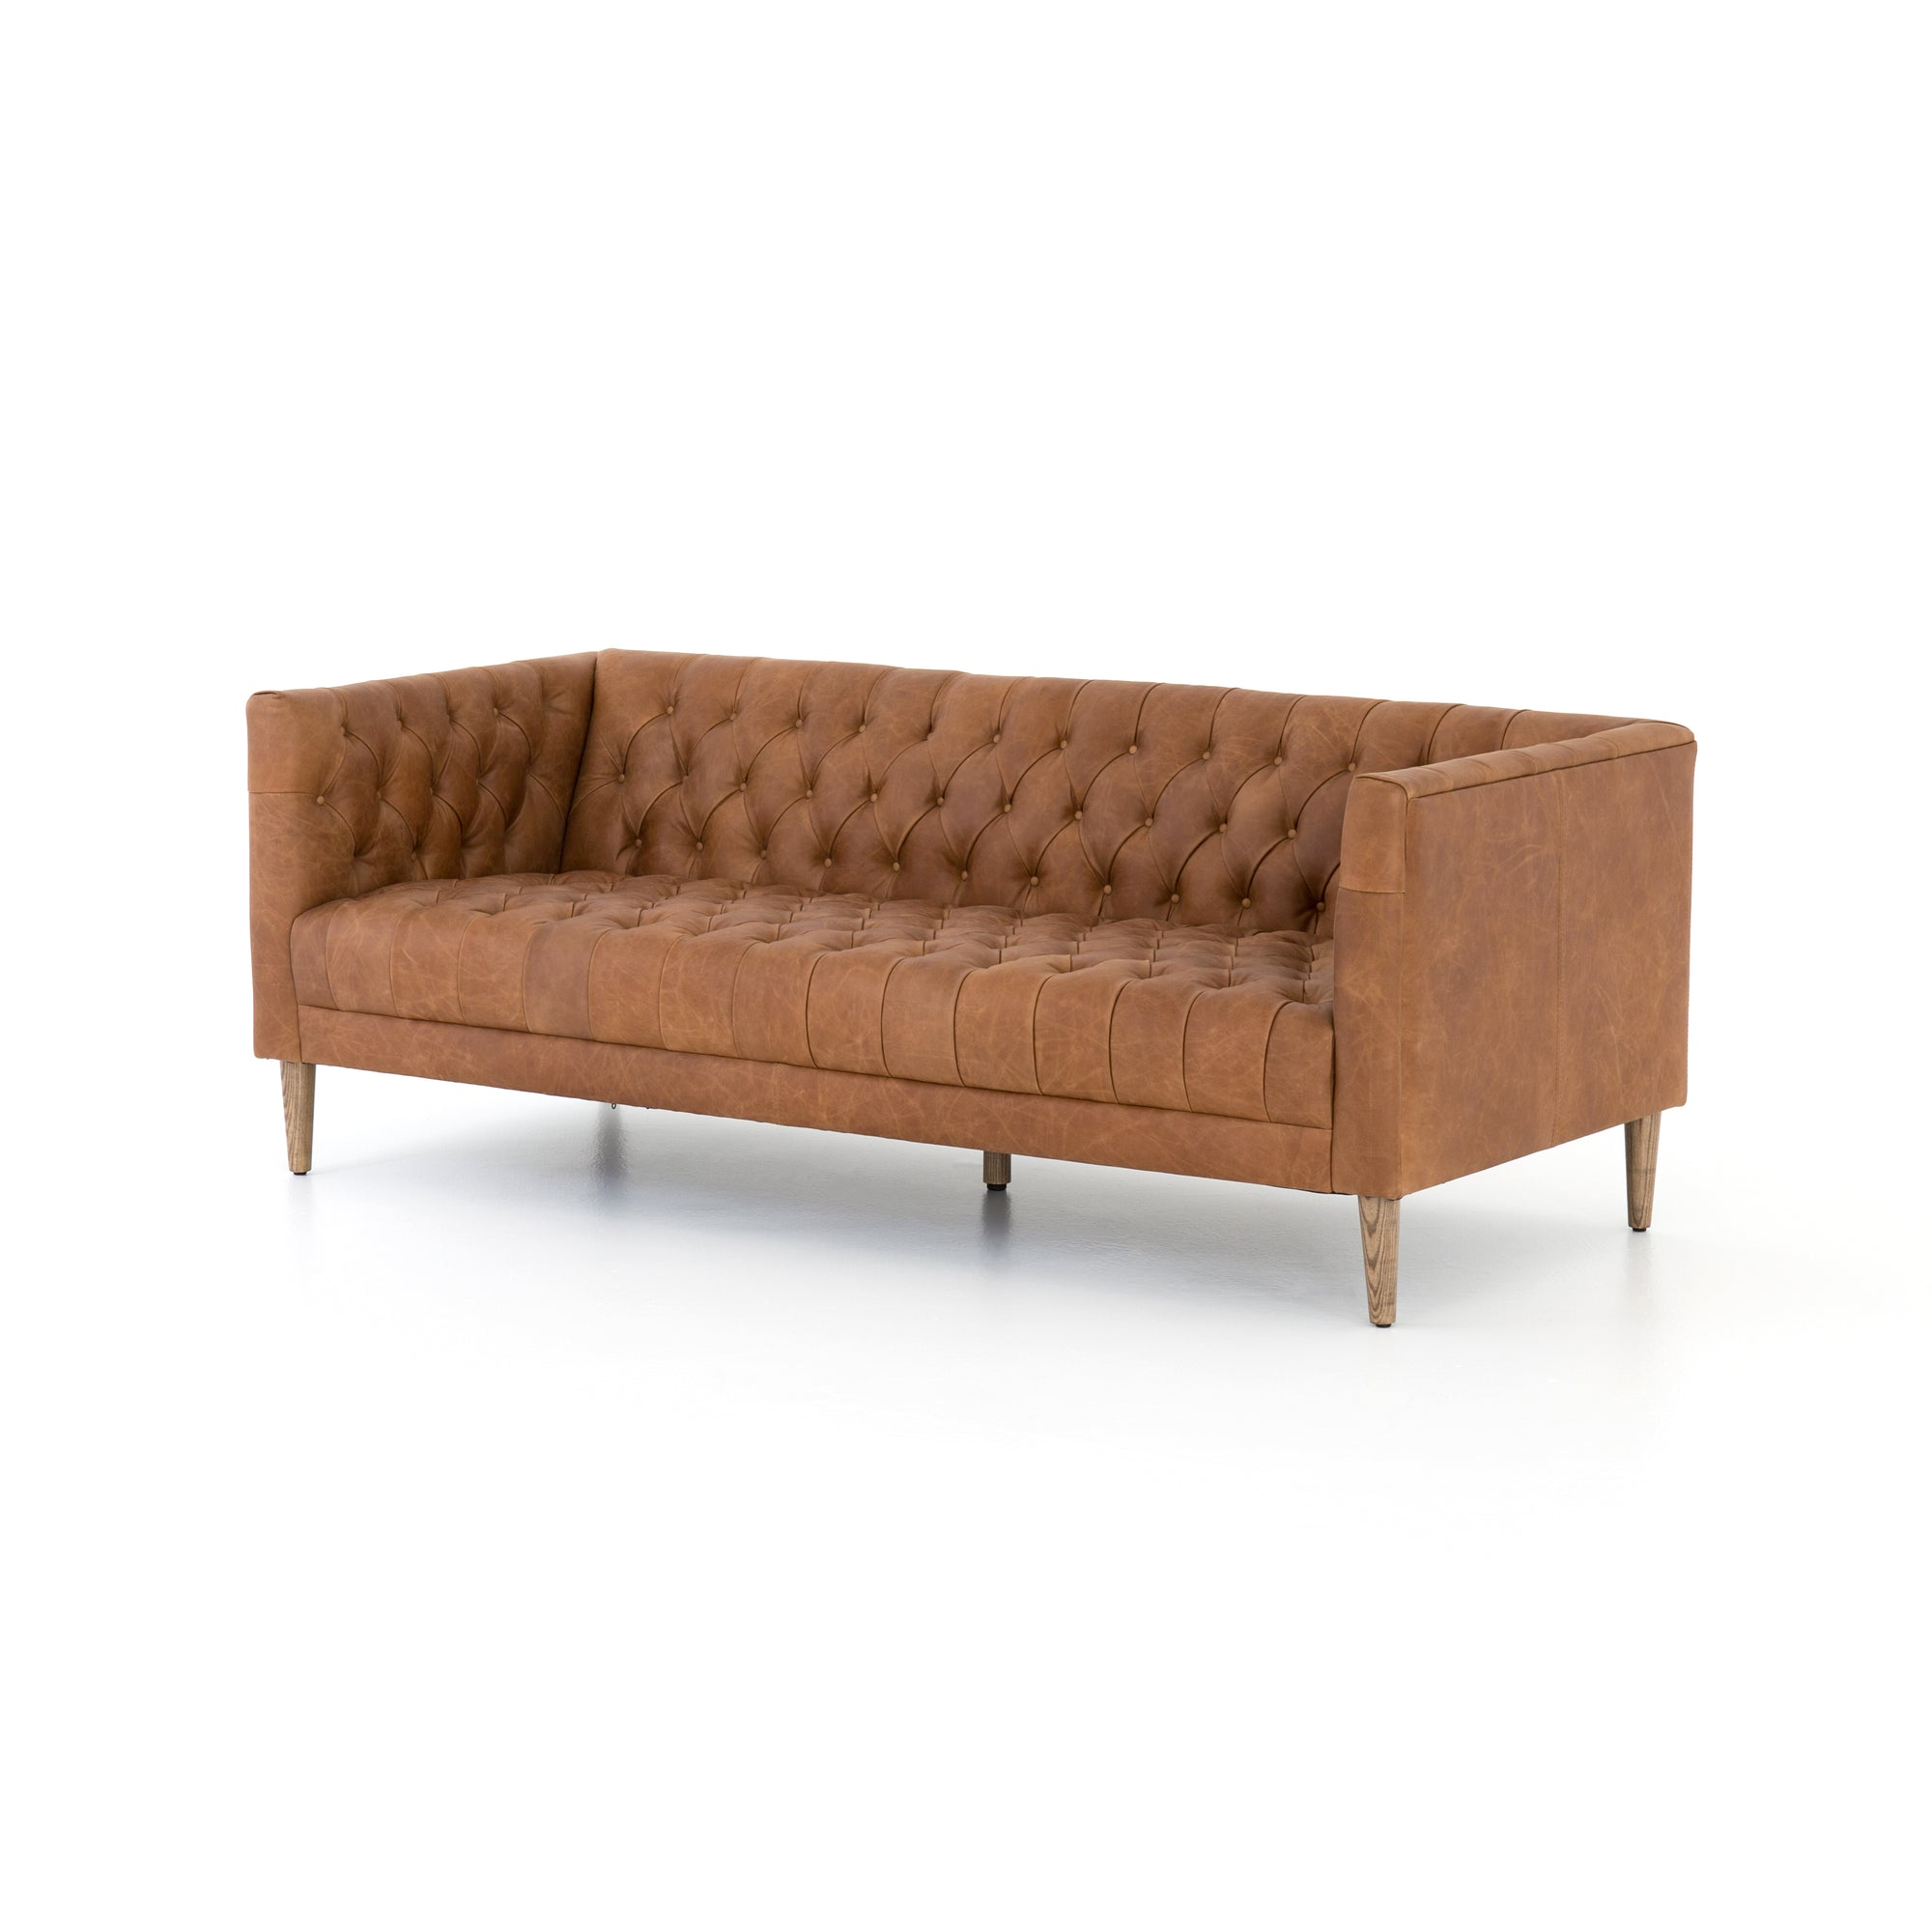 "Williams Leather Sofa - 75"" - Nat Wash Camel"